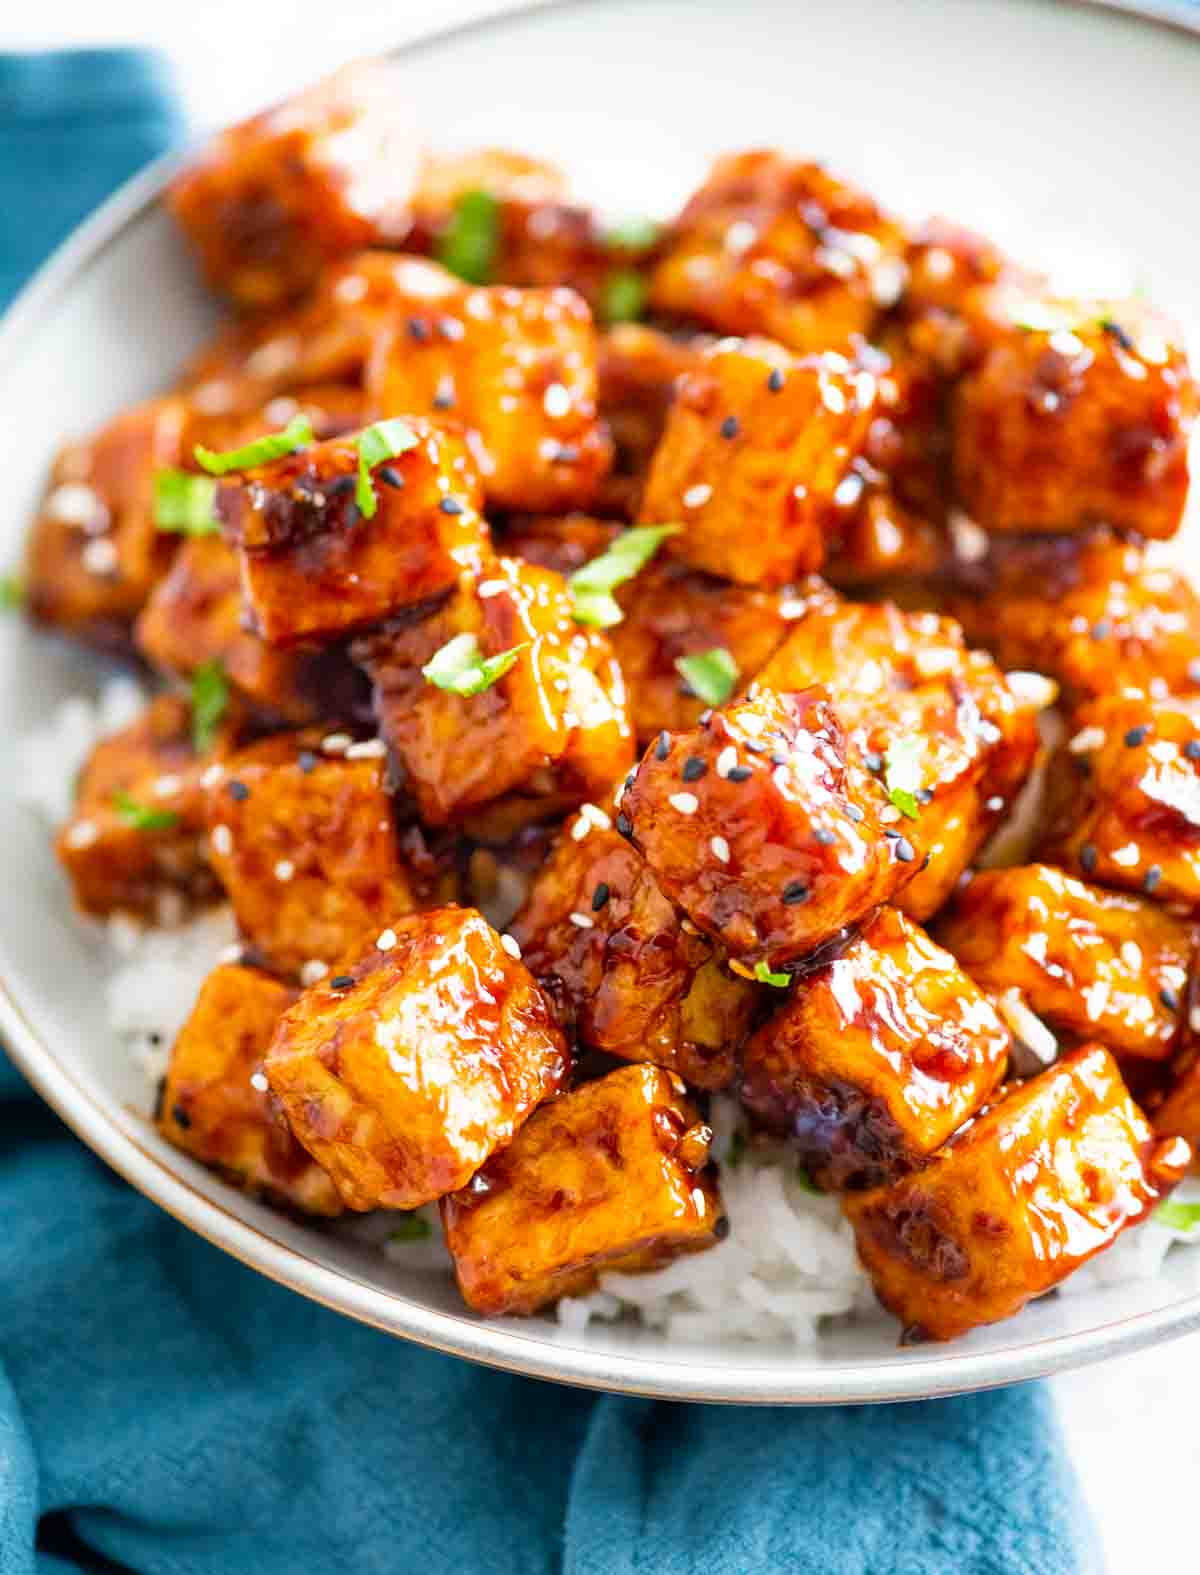 Tofu covered in Asian sauce garnished with sesame seeds in a bowl